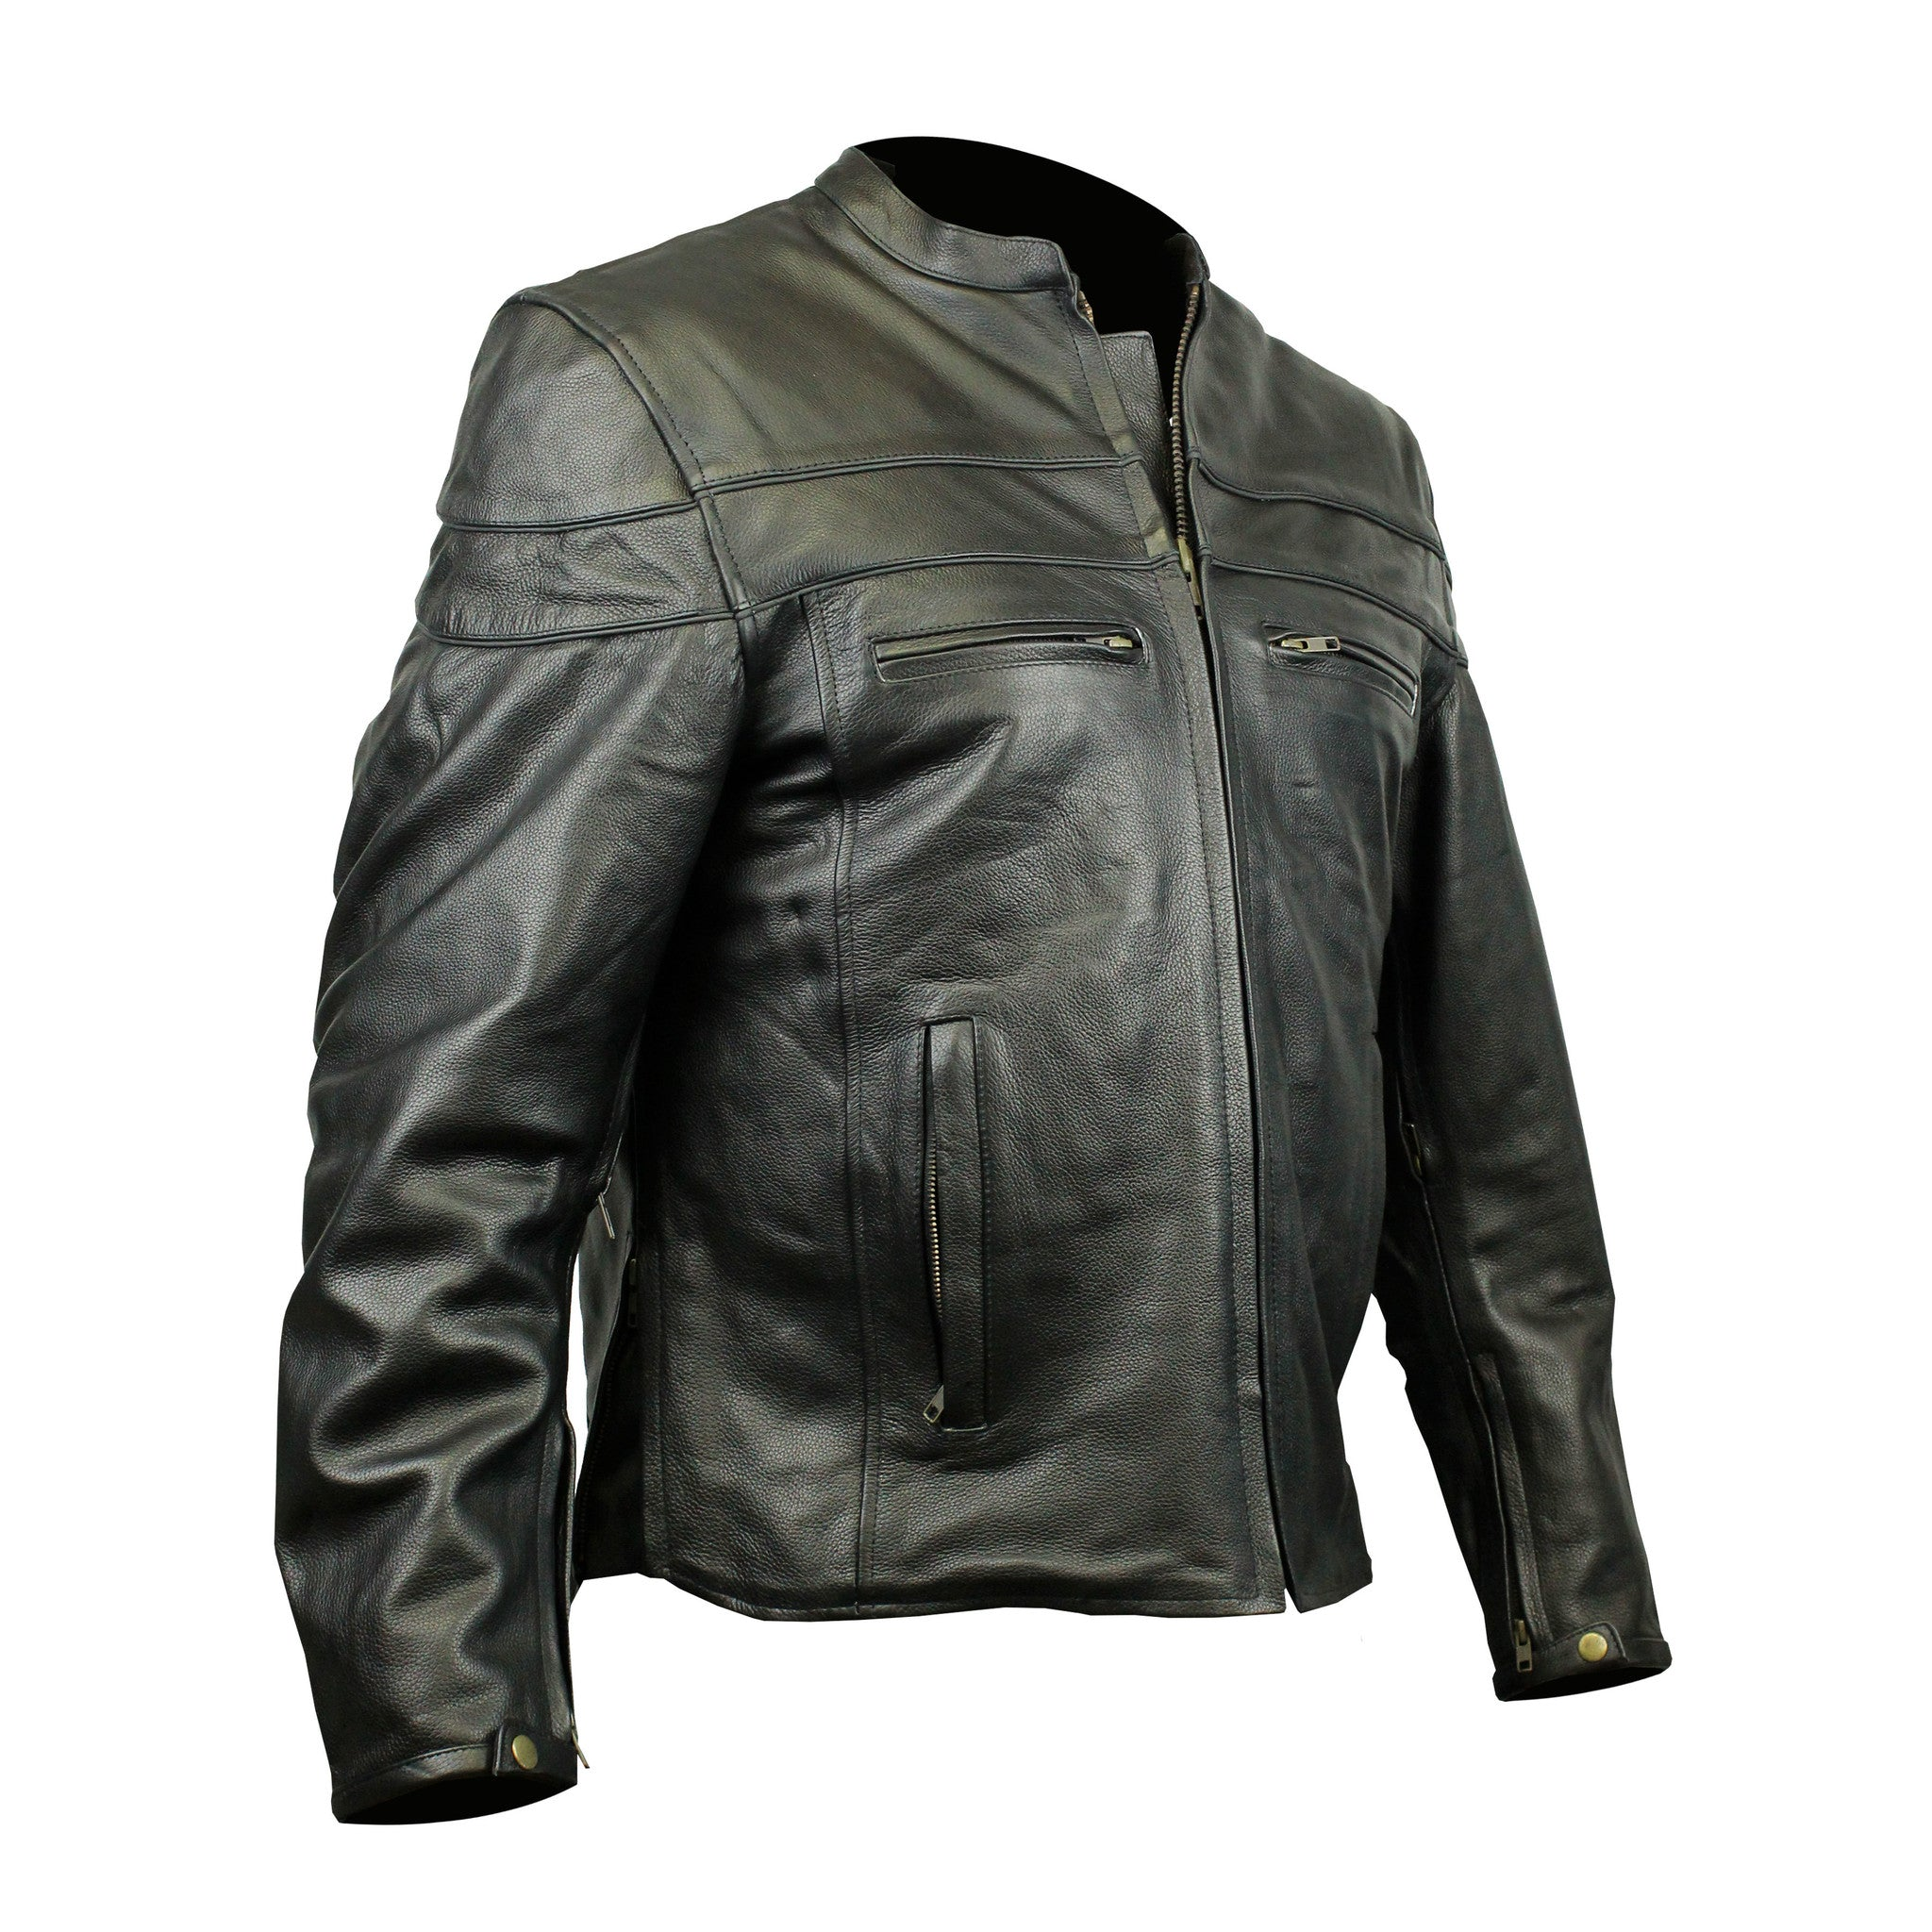 Highway to Blues Back Patch - Racer Leather Jacket with Vents (Men)